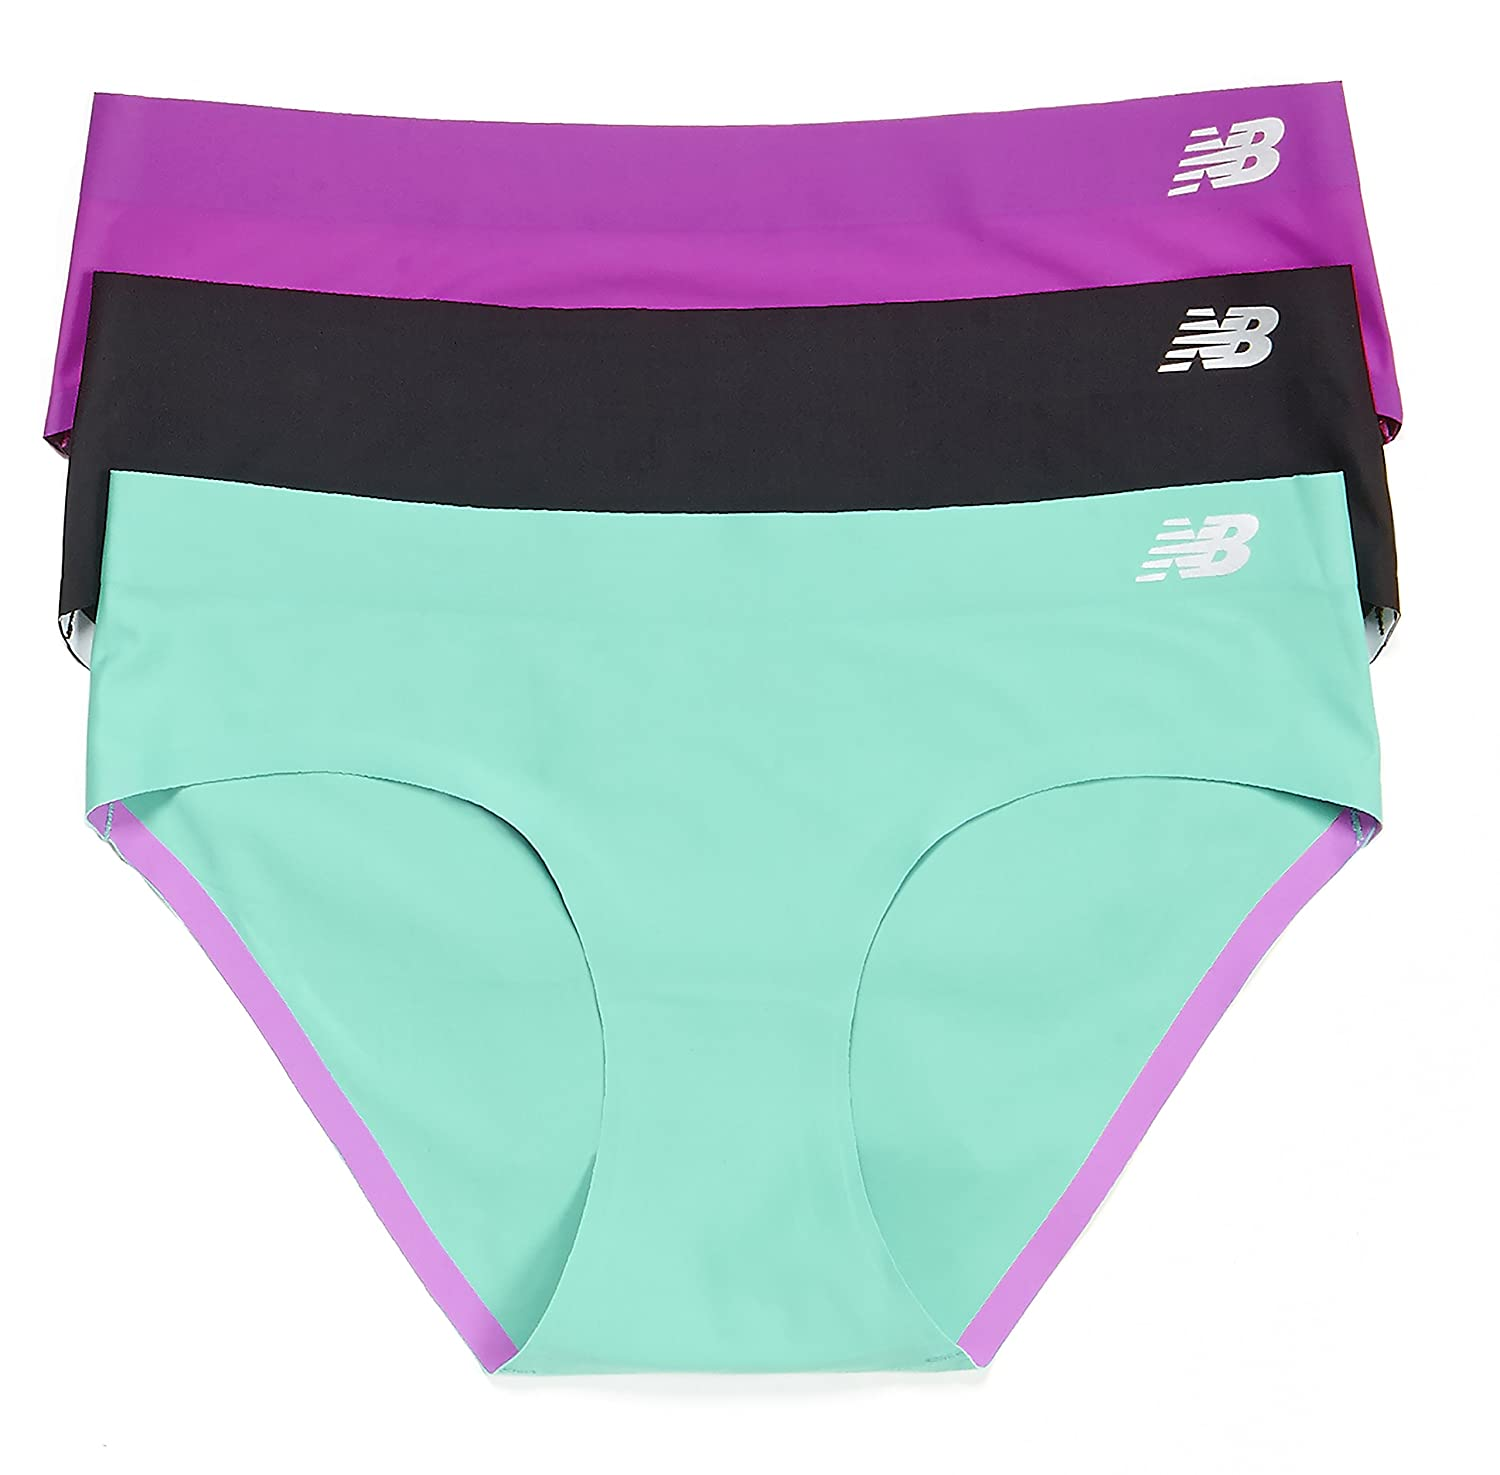 74b927ba7a7a Amazon.com: New Balance Womens Bond Hipster Panty 3-Pack: Clothing